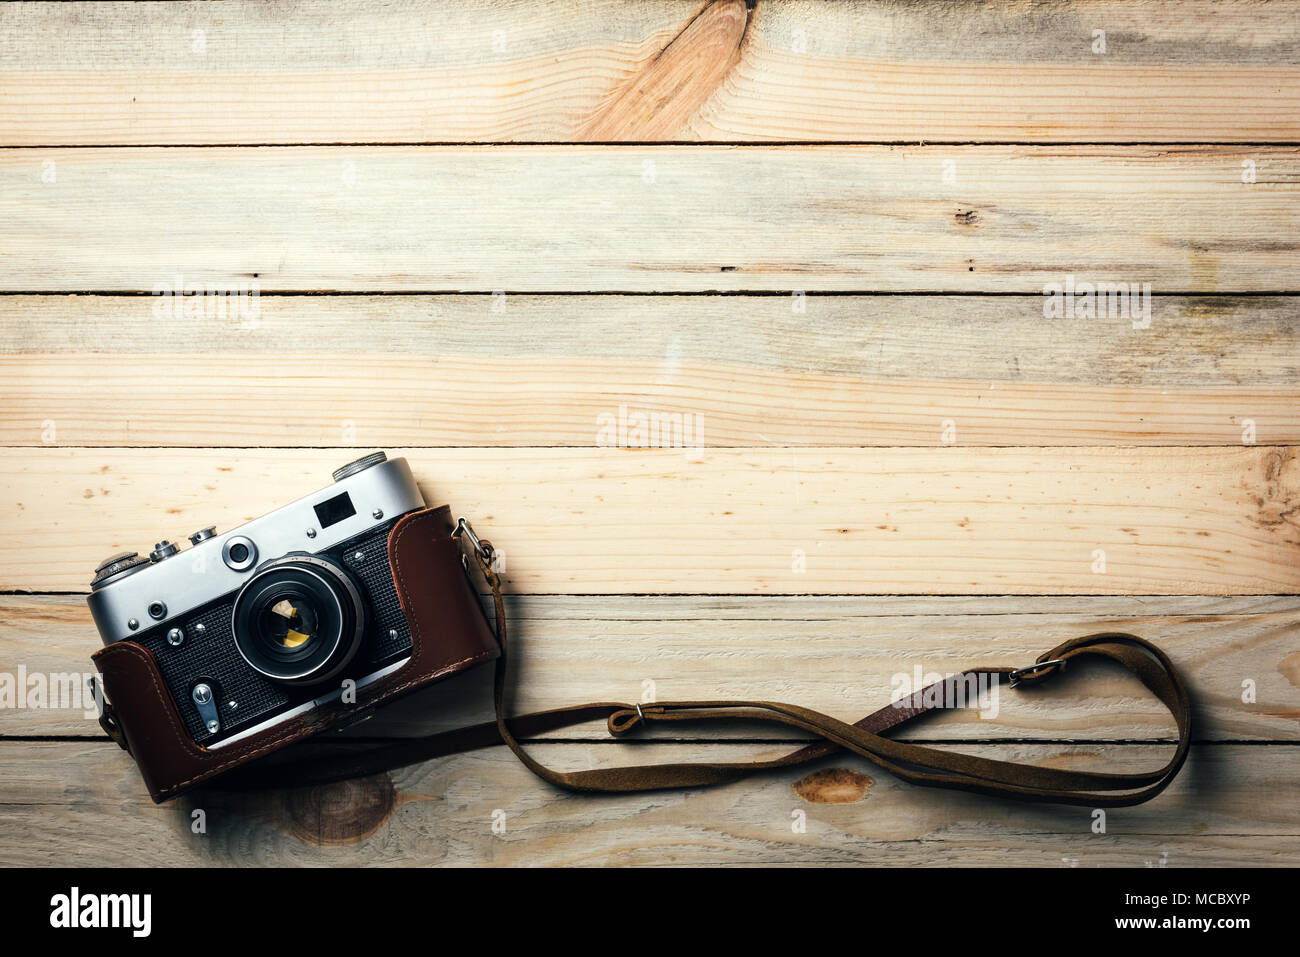 Old vintage film photo camera - Stock Image